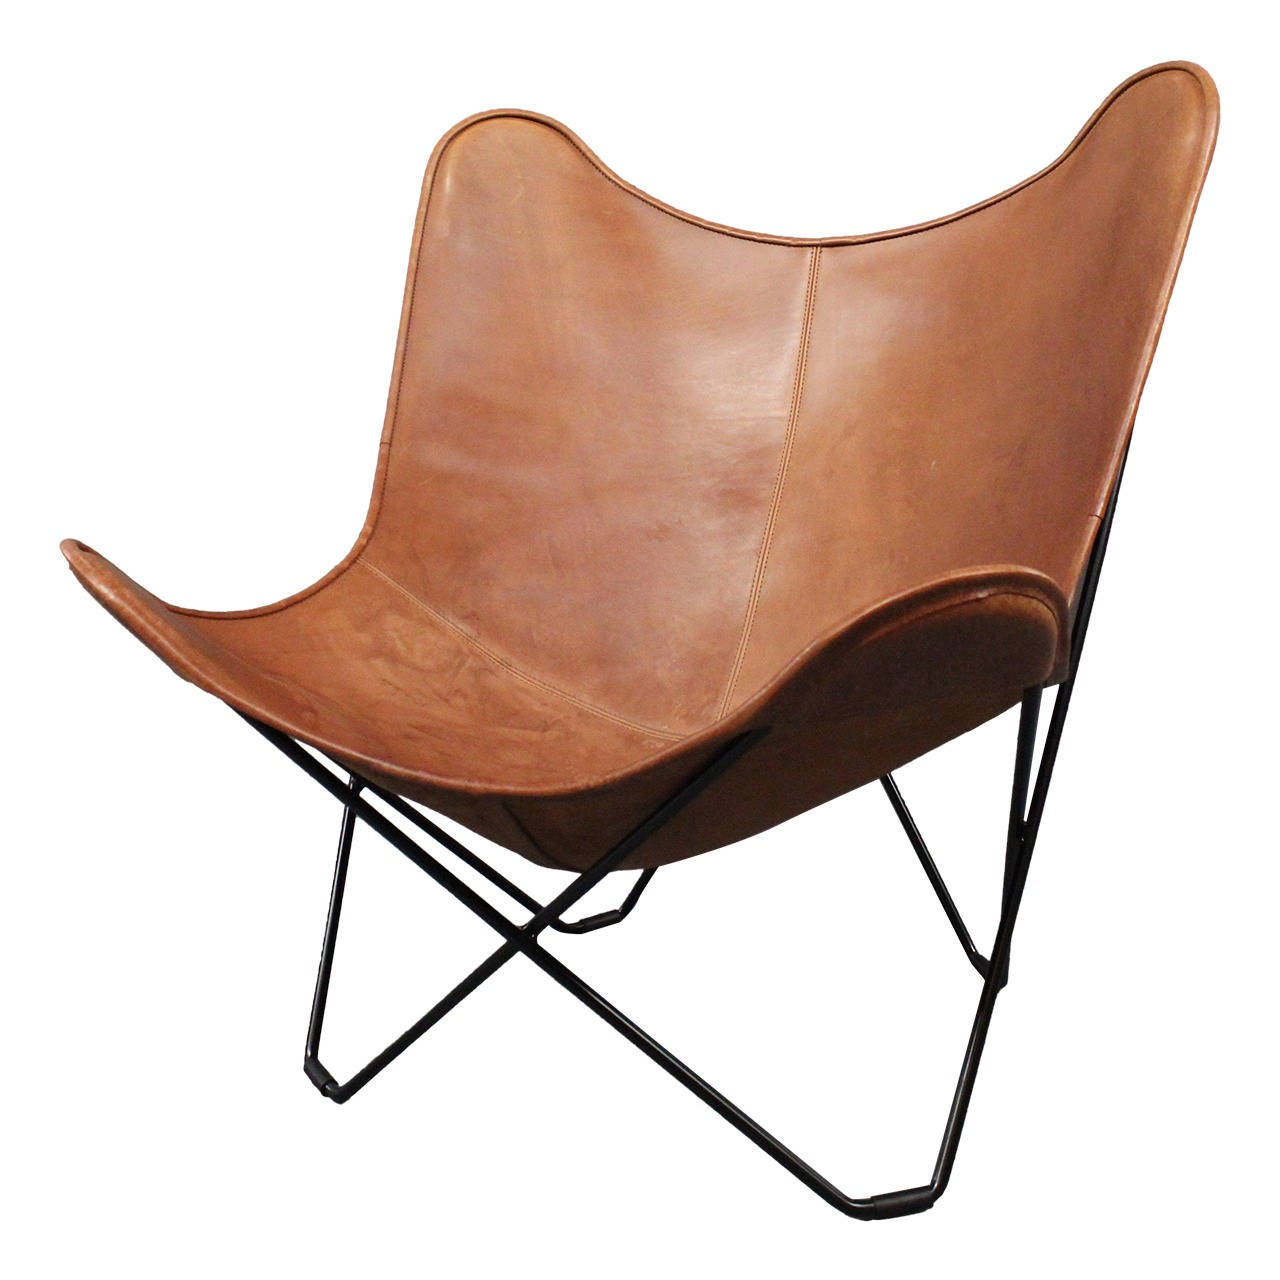 Leather Butterfly Chair Designed by Jorge FerrariHardoy